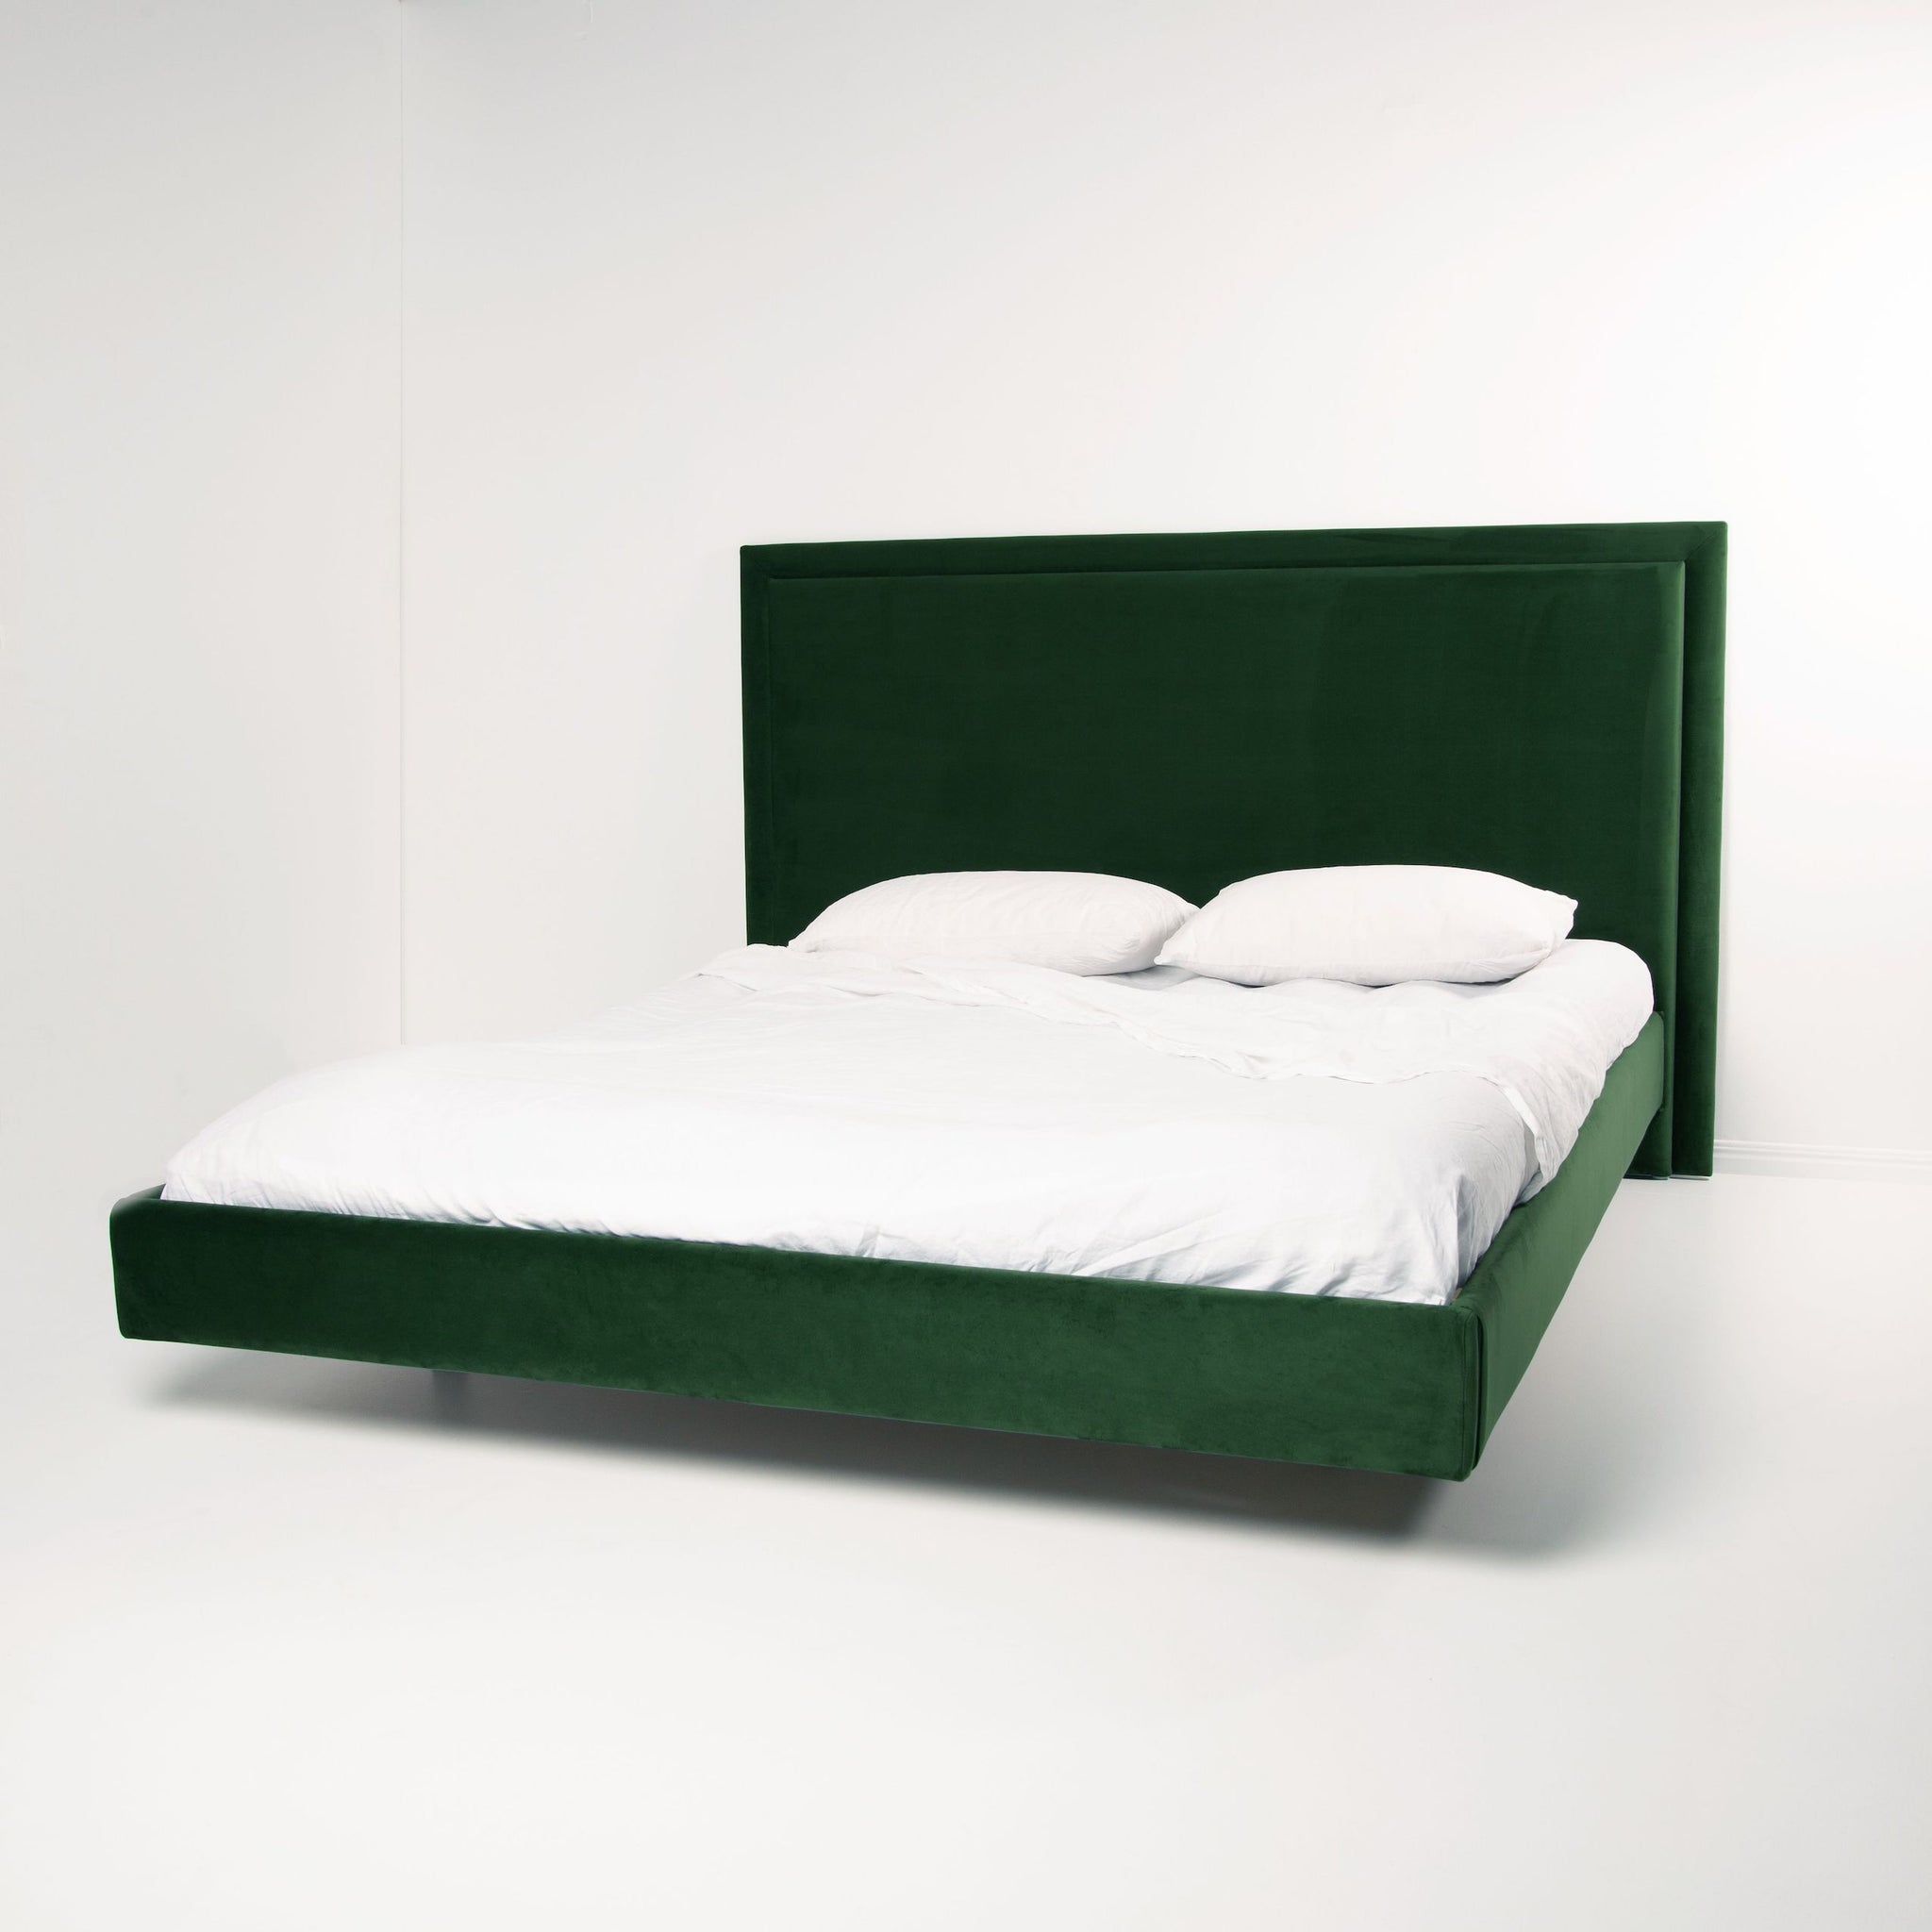 Velvet Bed Frame in Forest Green featuring the Floating Bed Base by Create Estate